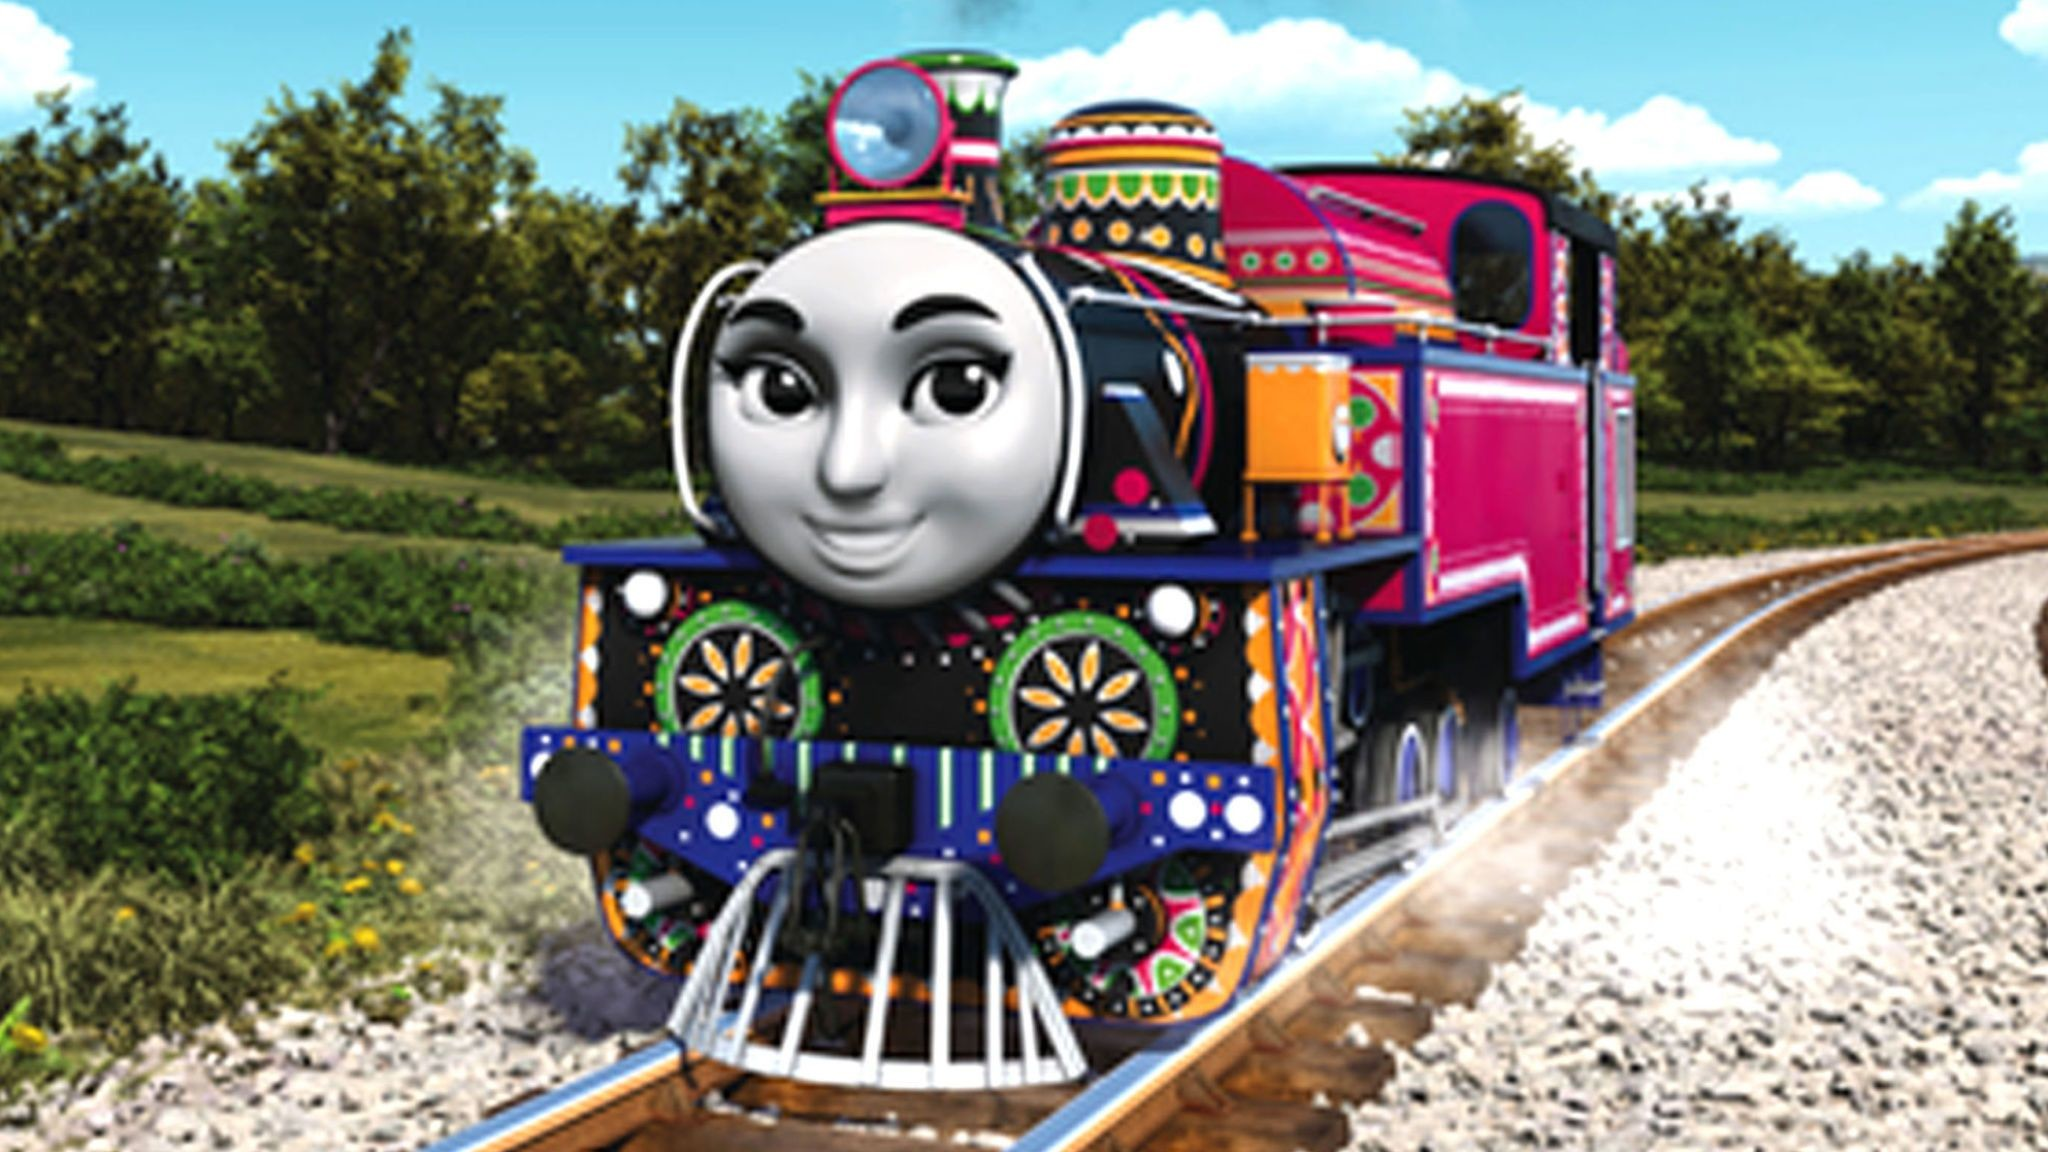 2048x1152 Thomas the Tank Engine gets multicultural makeover